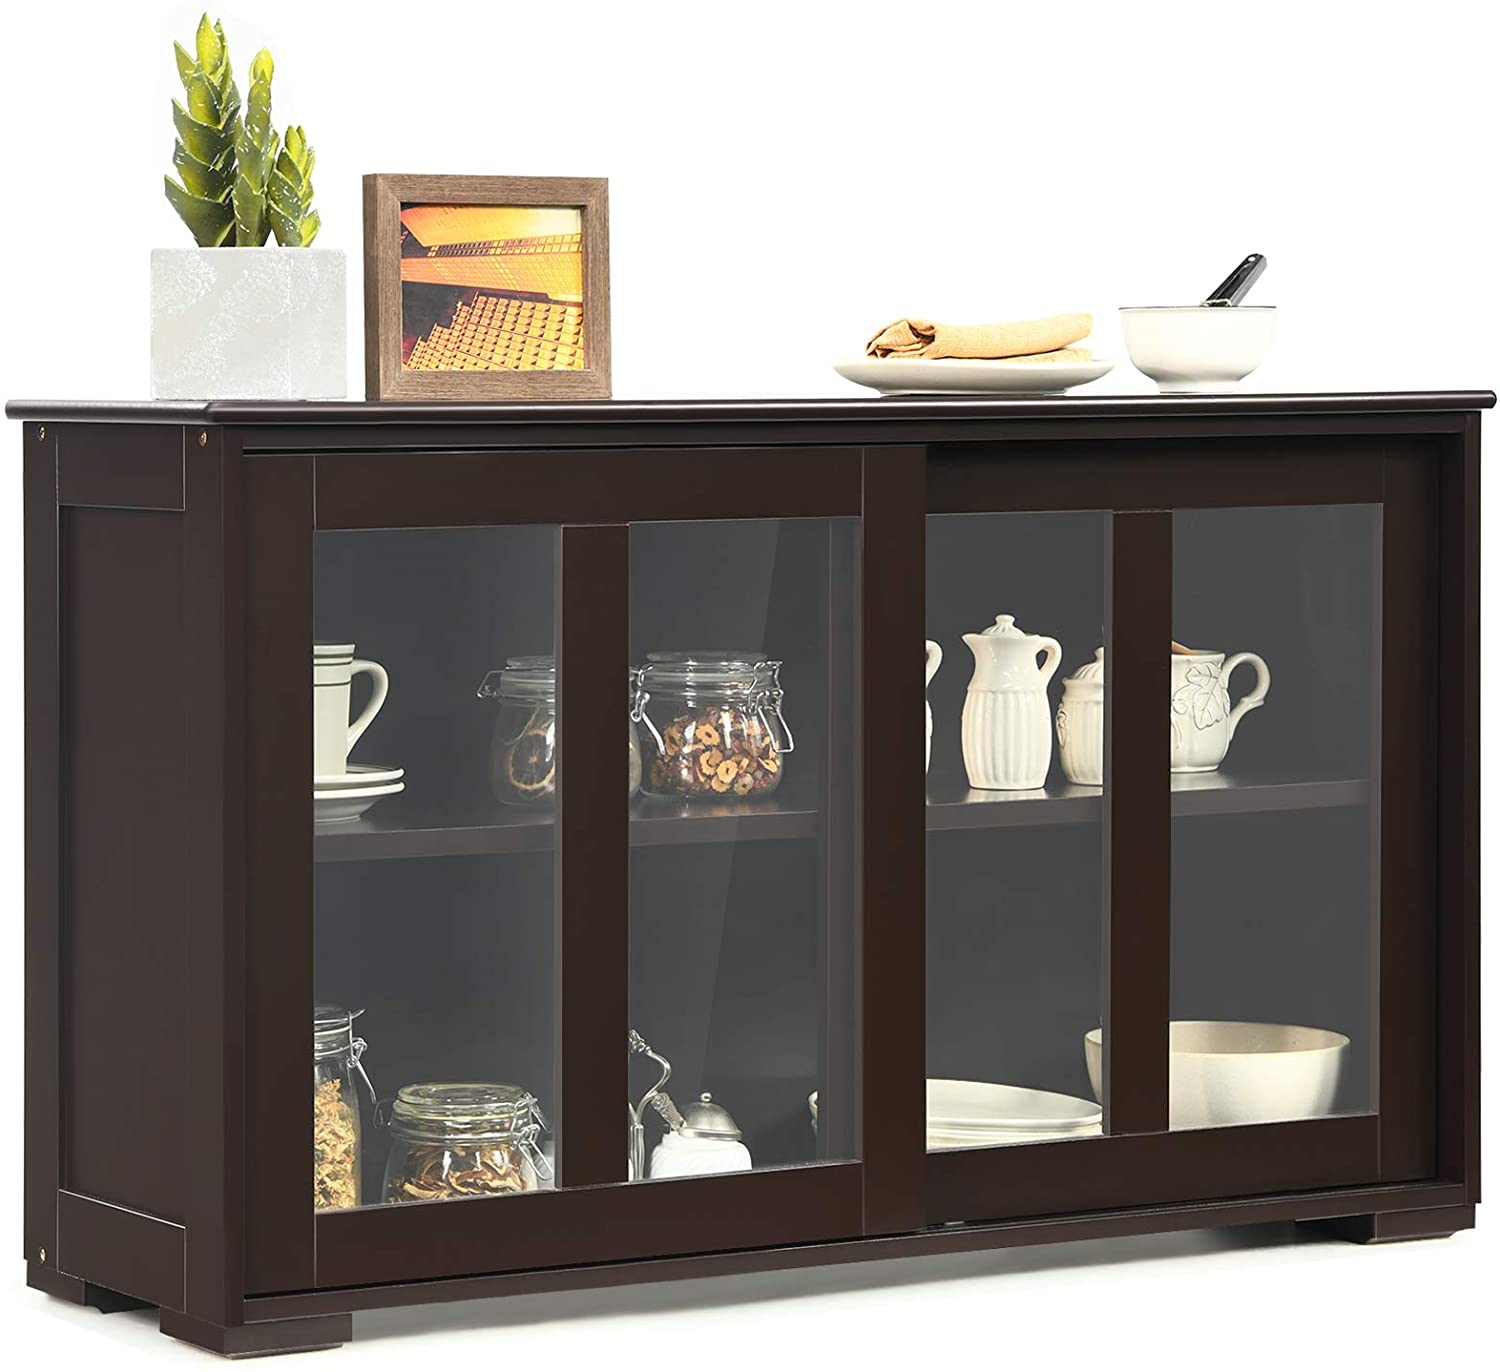 Costzon Kitchen Storage Sideboard, Antique Stackable Cabinet for Home Cupboard Buffet Dining Room (Coffee Sideboard with Sliding Door Window)